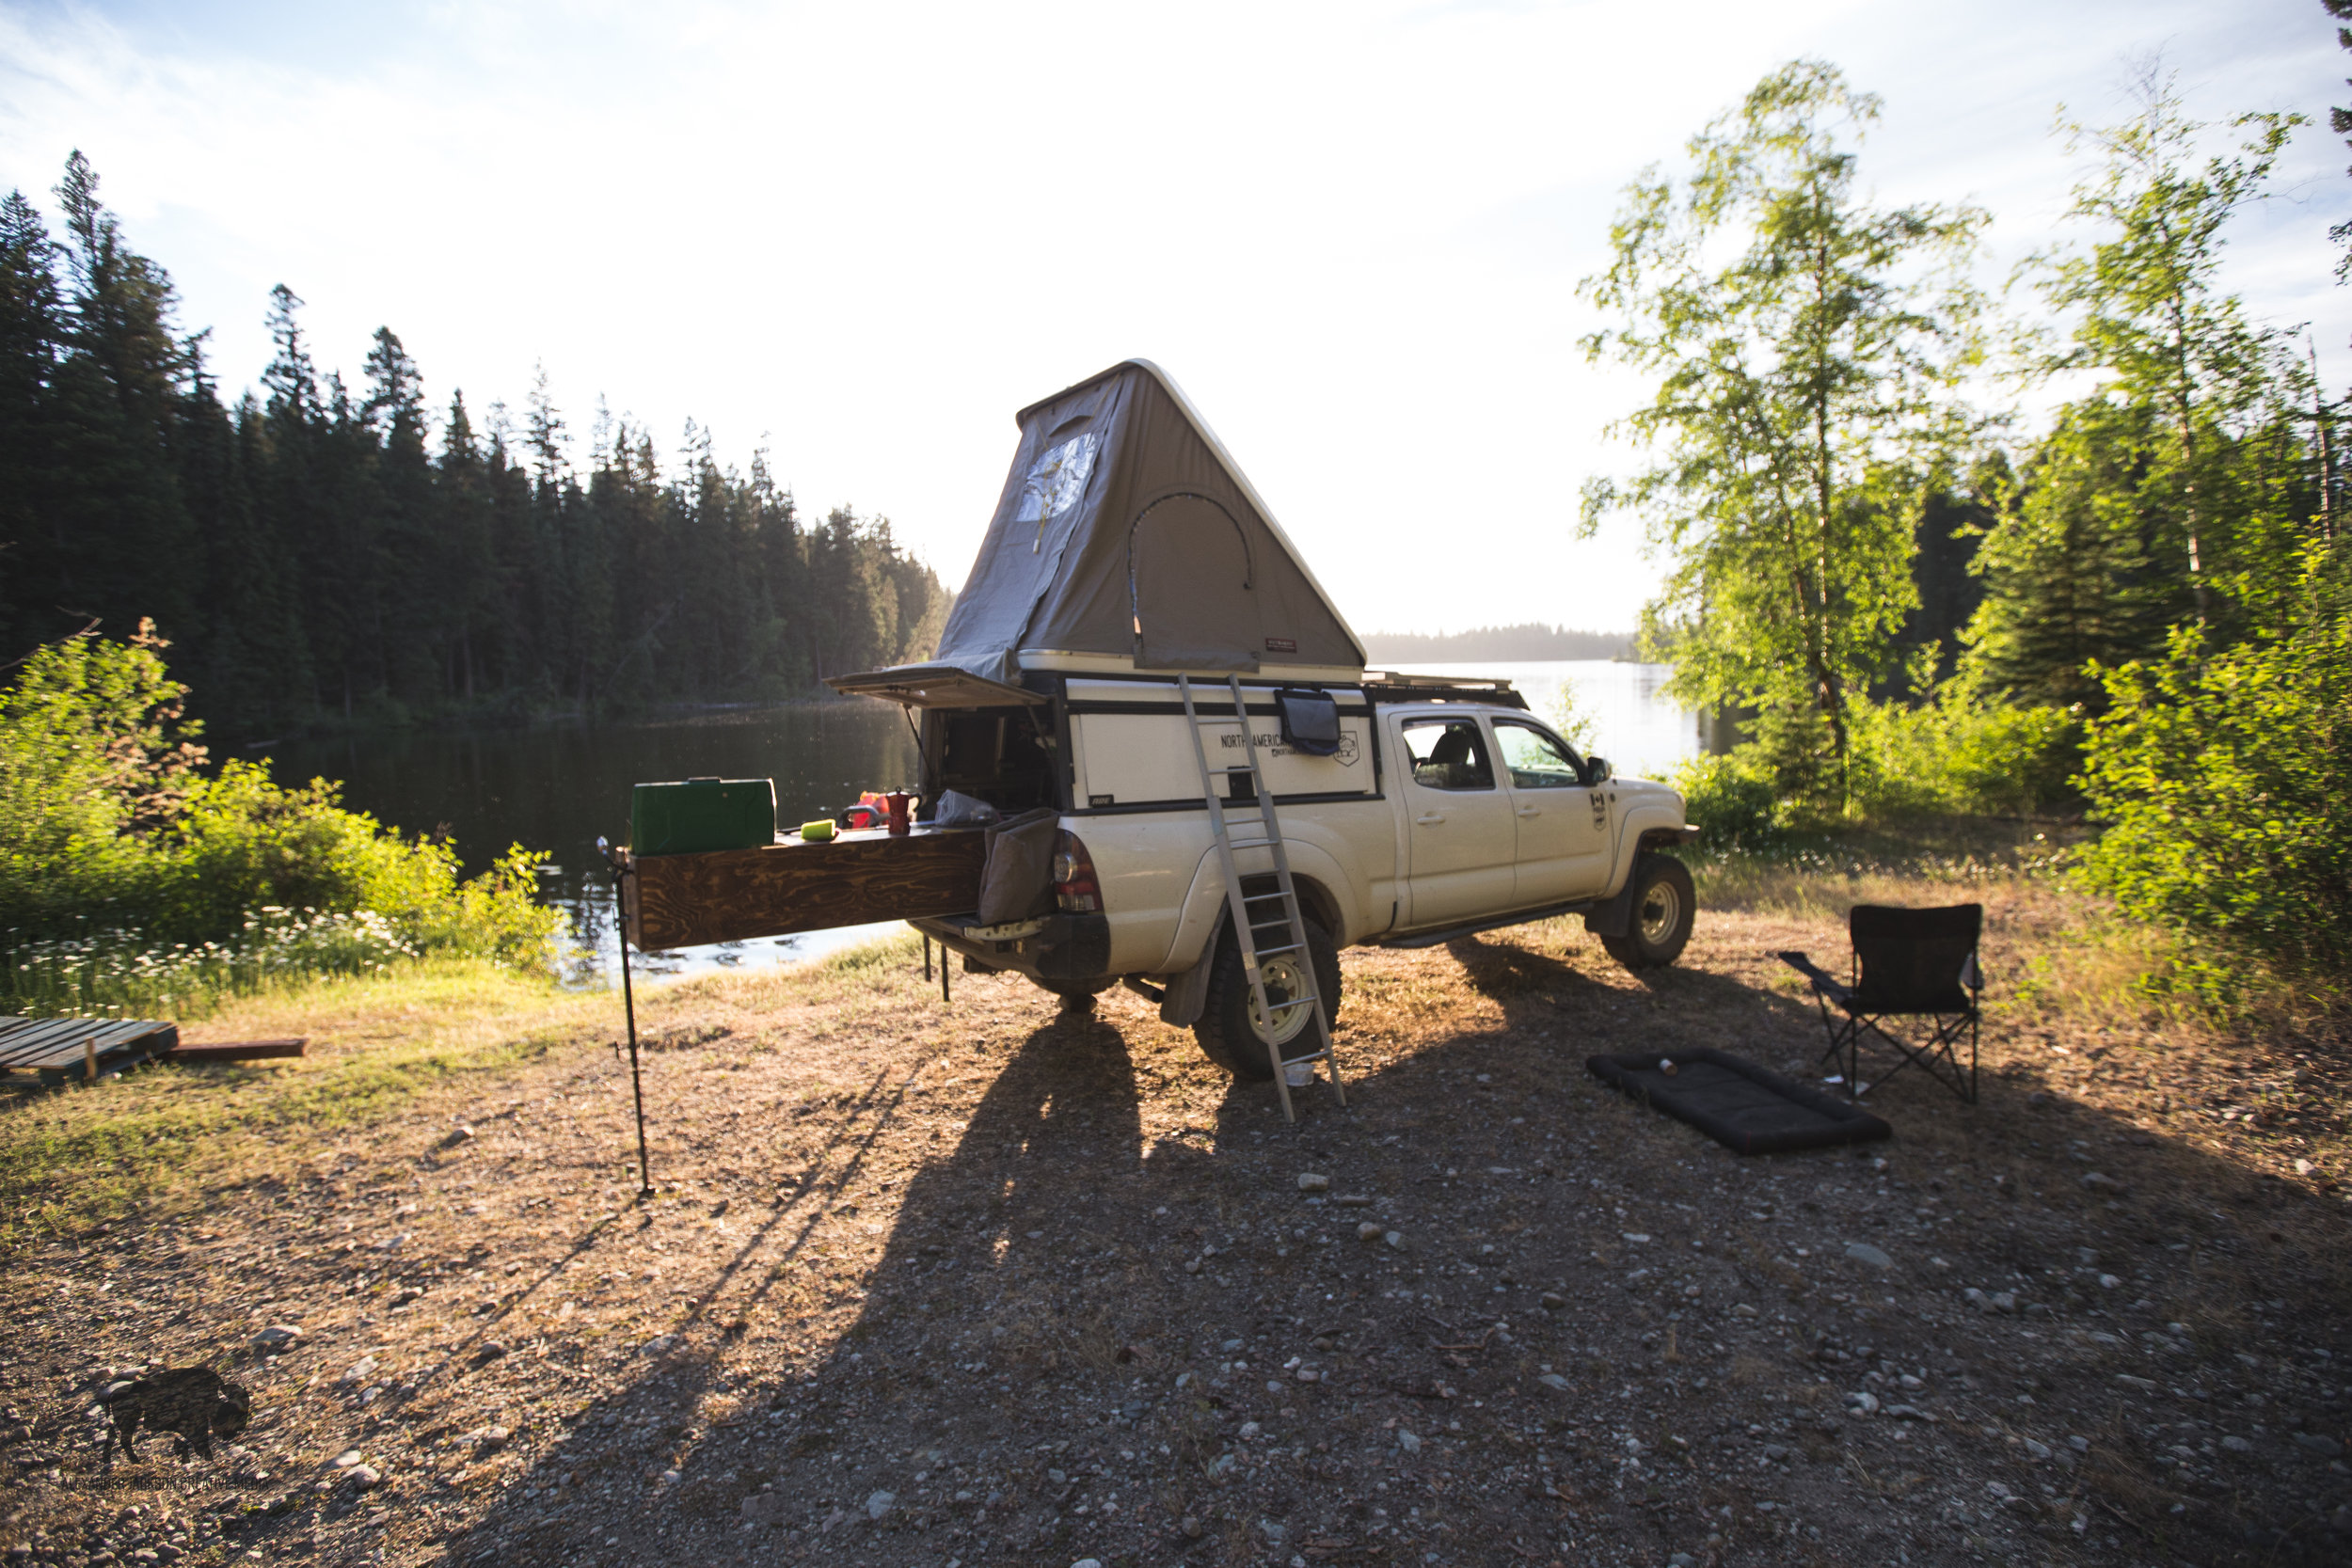 My campsite on the bank of Cuisson Lake.